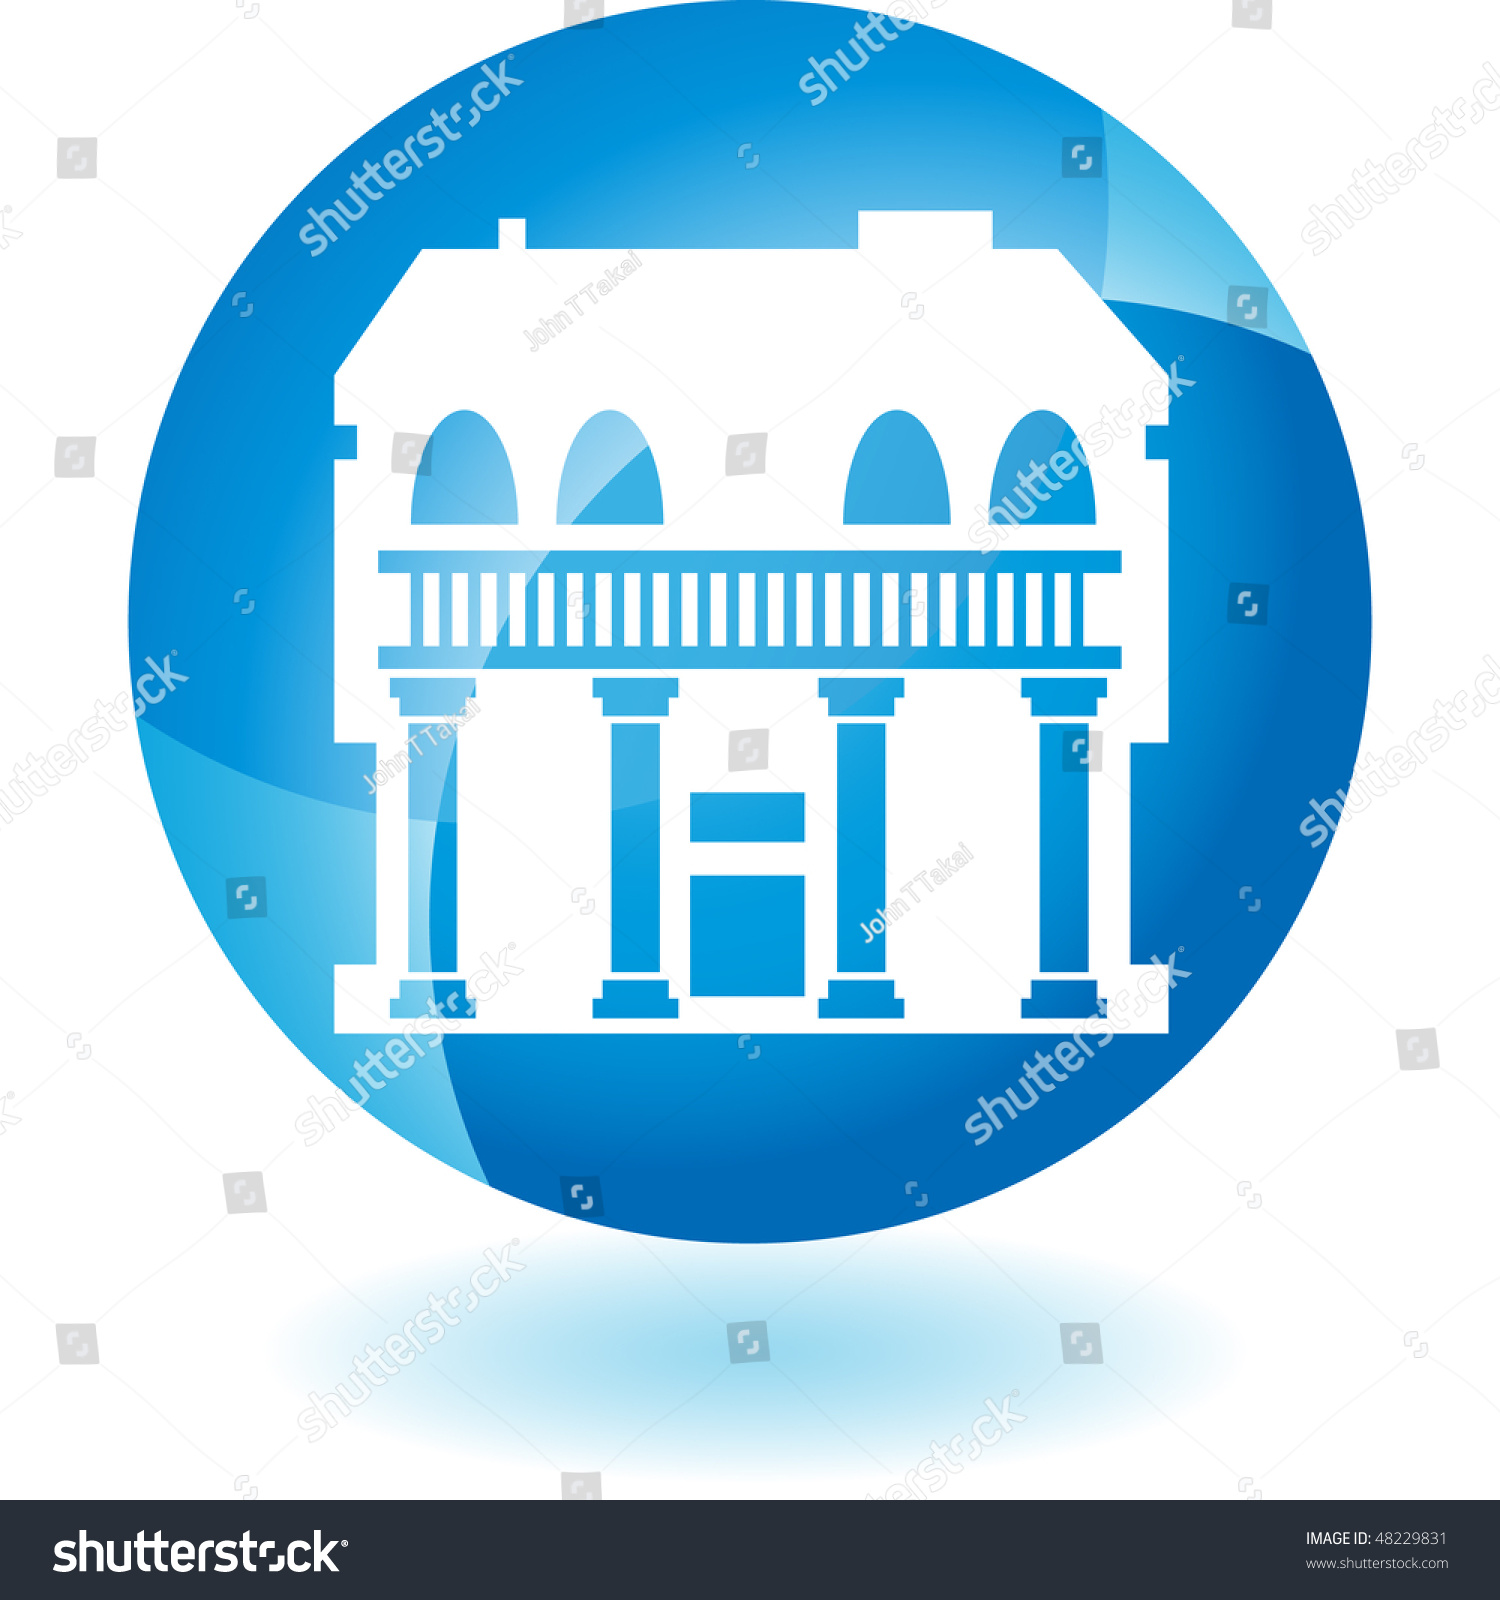 Building symbol isolated web icon on stock illustration 48229831 building symbol isolated web icon on stock illustration 48229831 shutterstock biocorpaavc